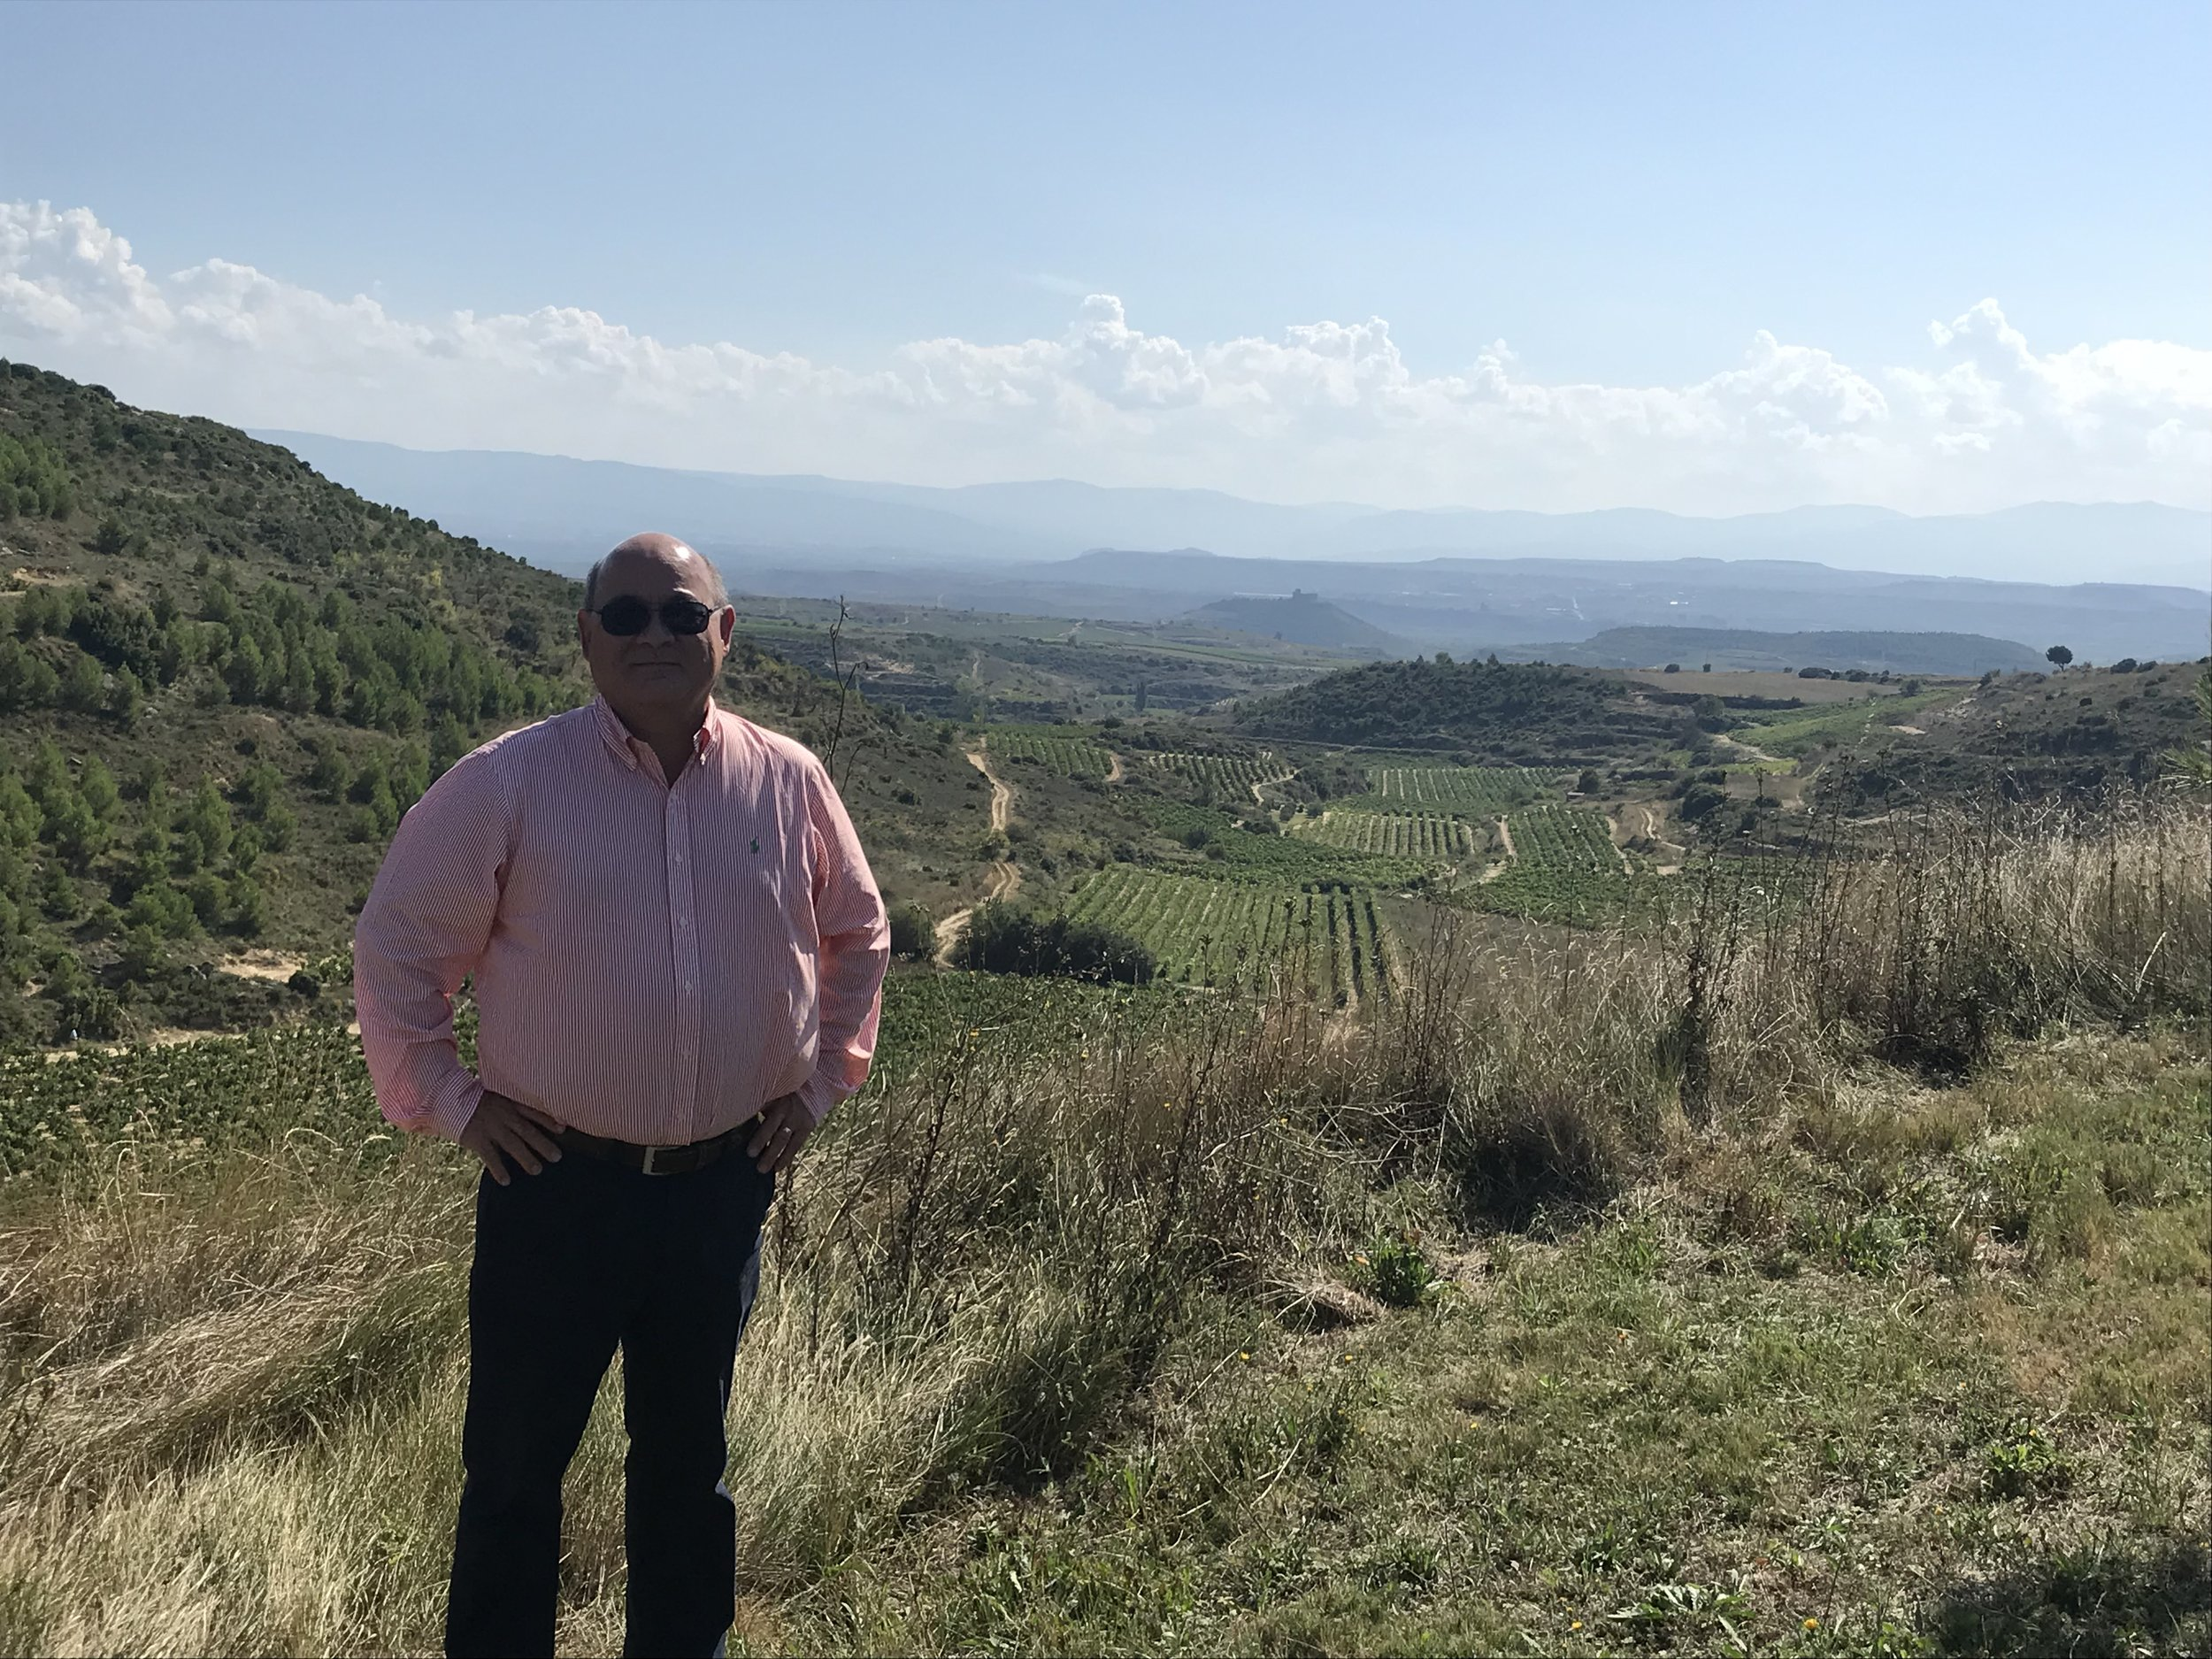 Standing on the grounds of Santa Maria de la Piscine with vineyards below and mountains in the distance.